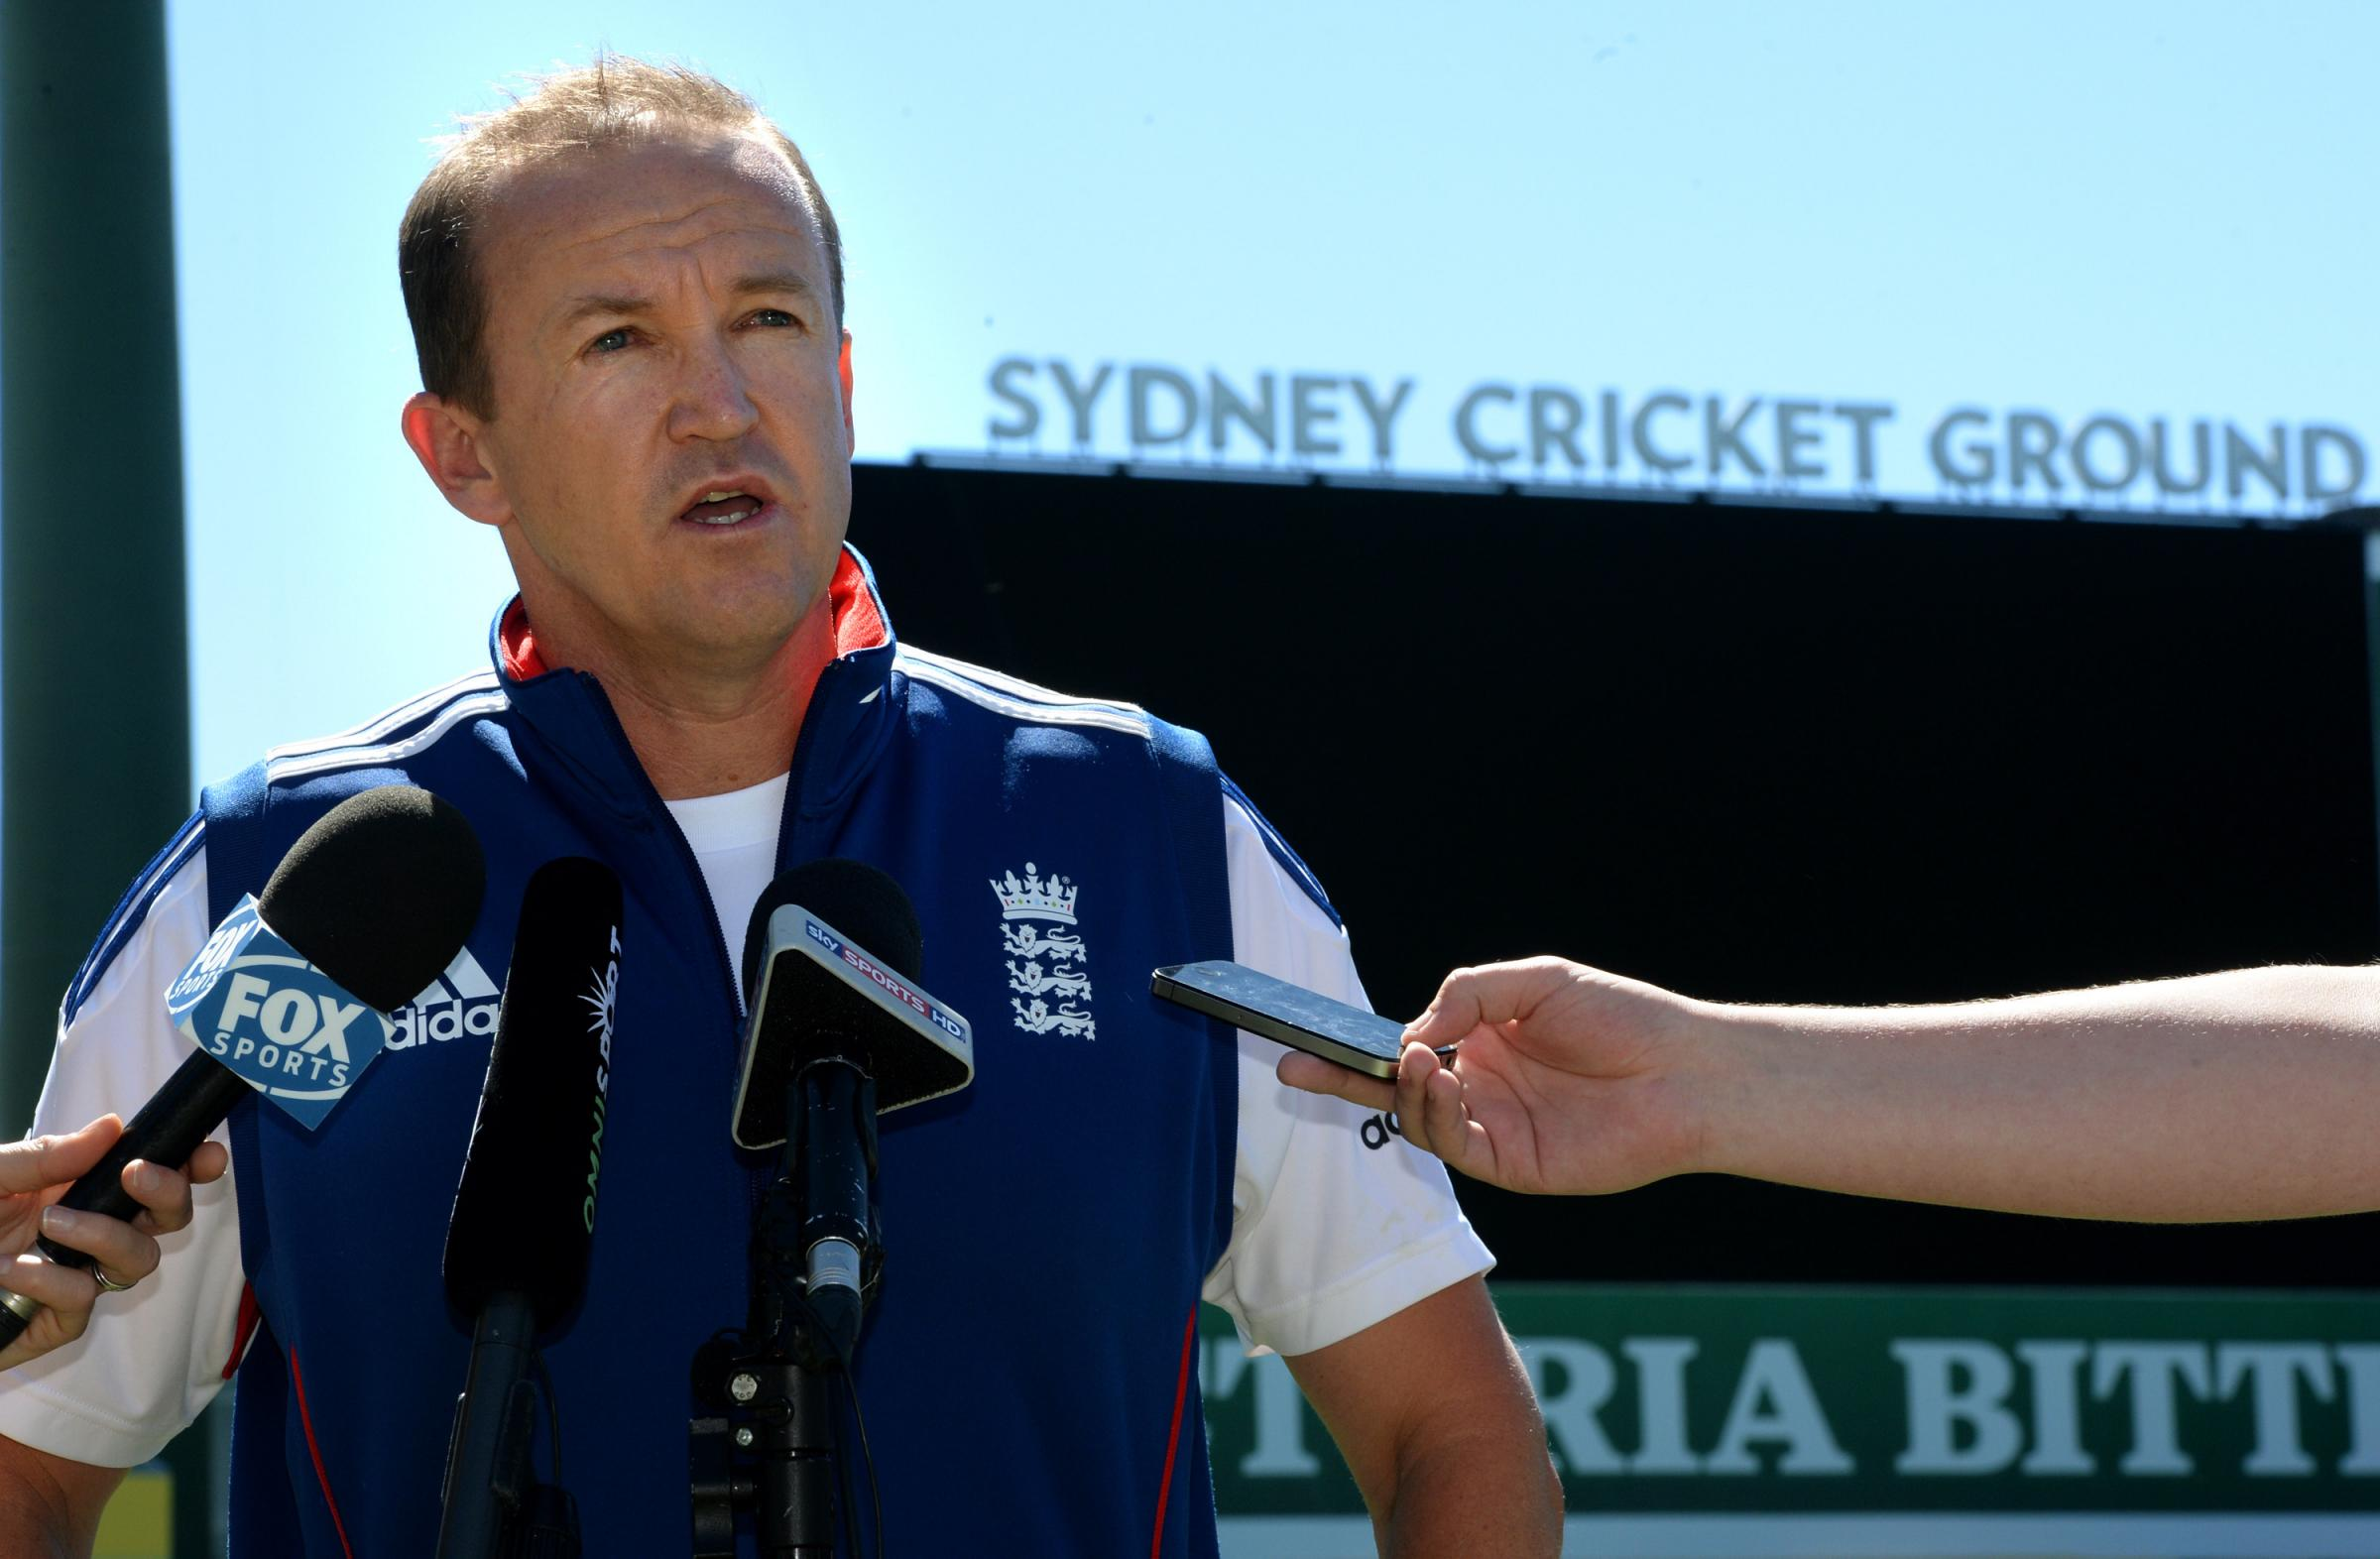 NEW ROLE: Former England coach Andy Flower has been appointed technical director of elite coaching by the ECB